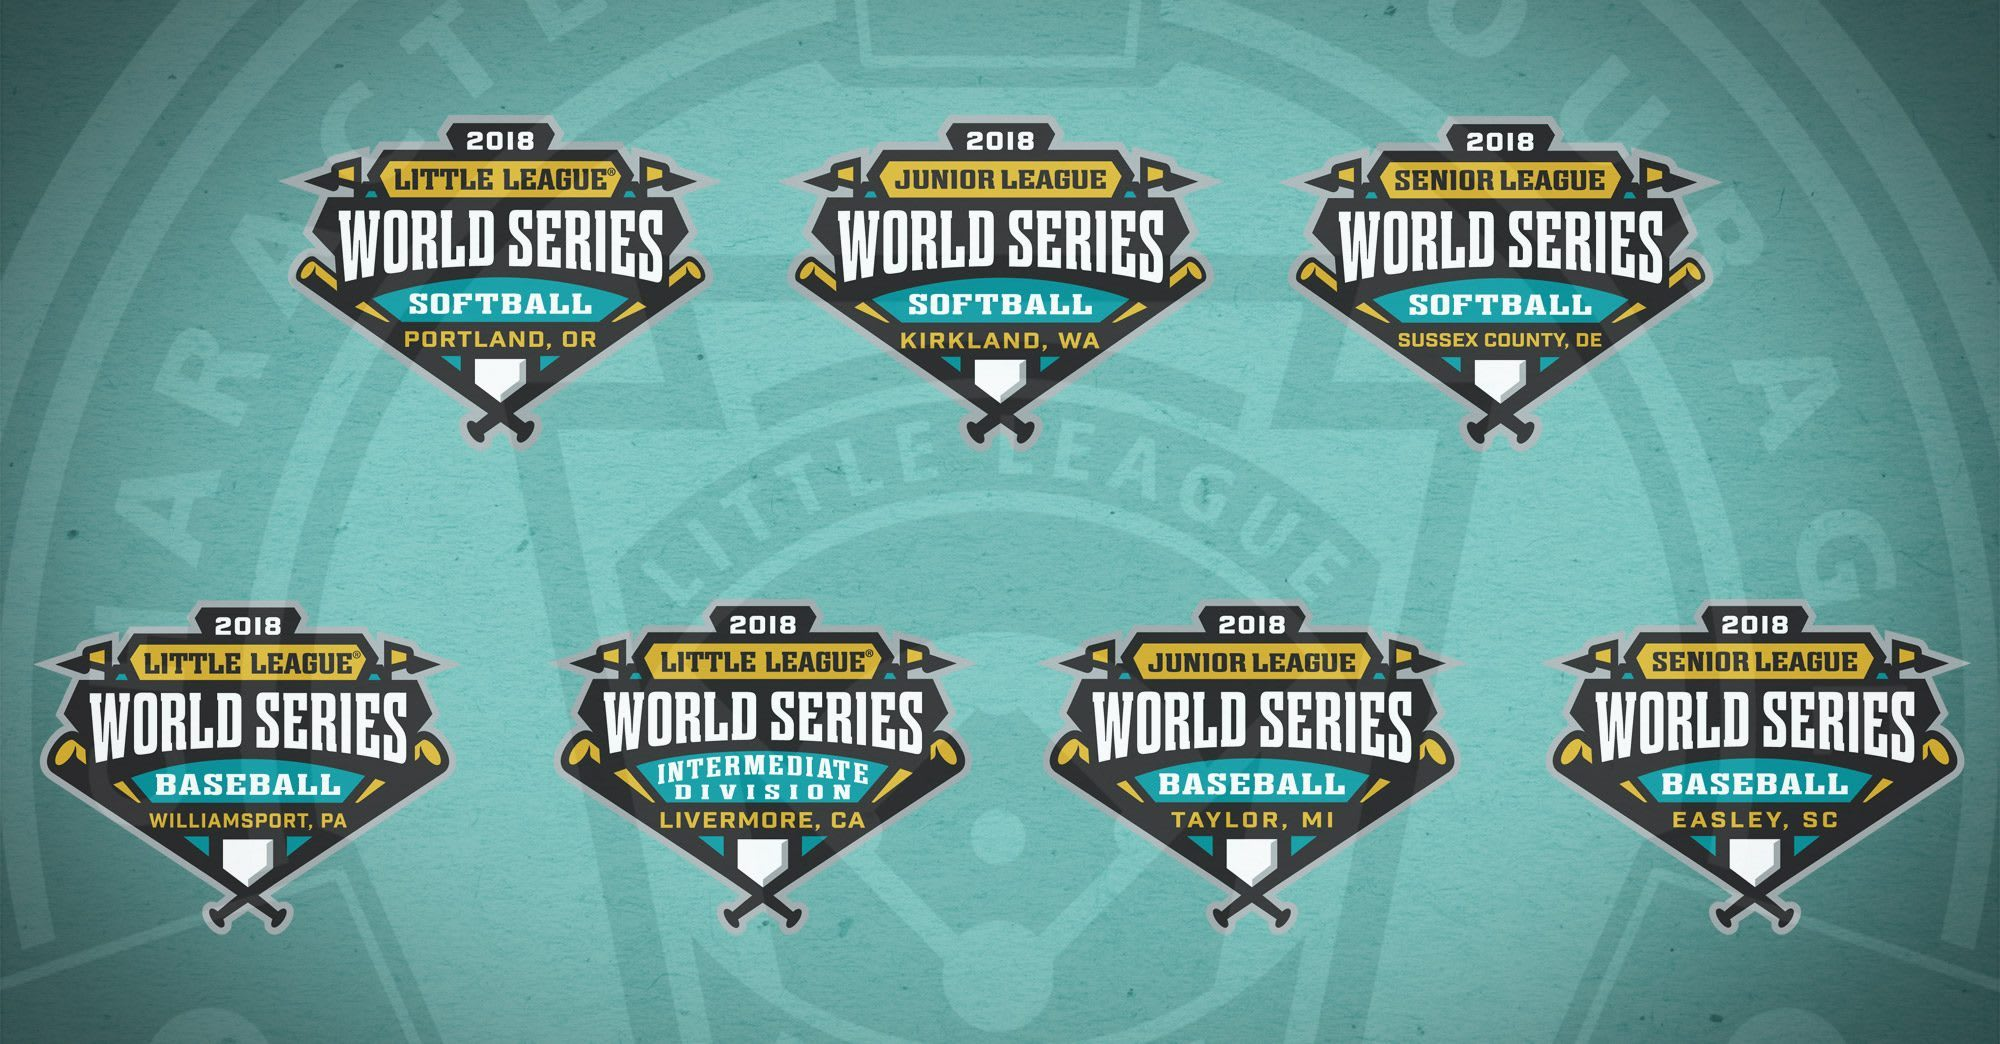 2018 Little League World Series Logos